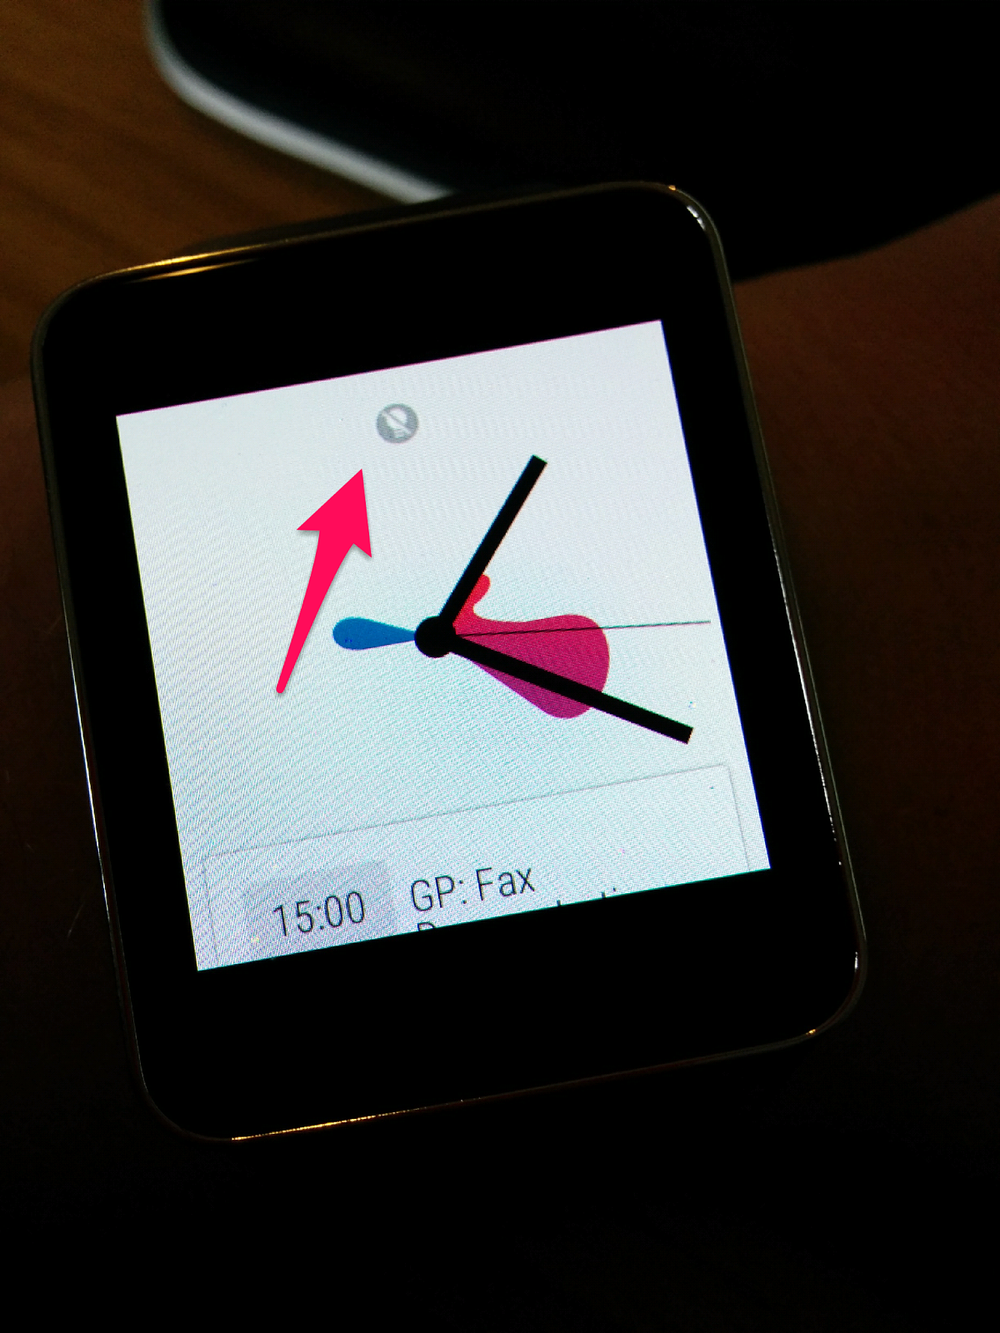 What Does The Crossed Out Light Bulb Icon Mean On Android Wear